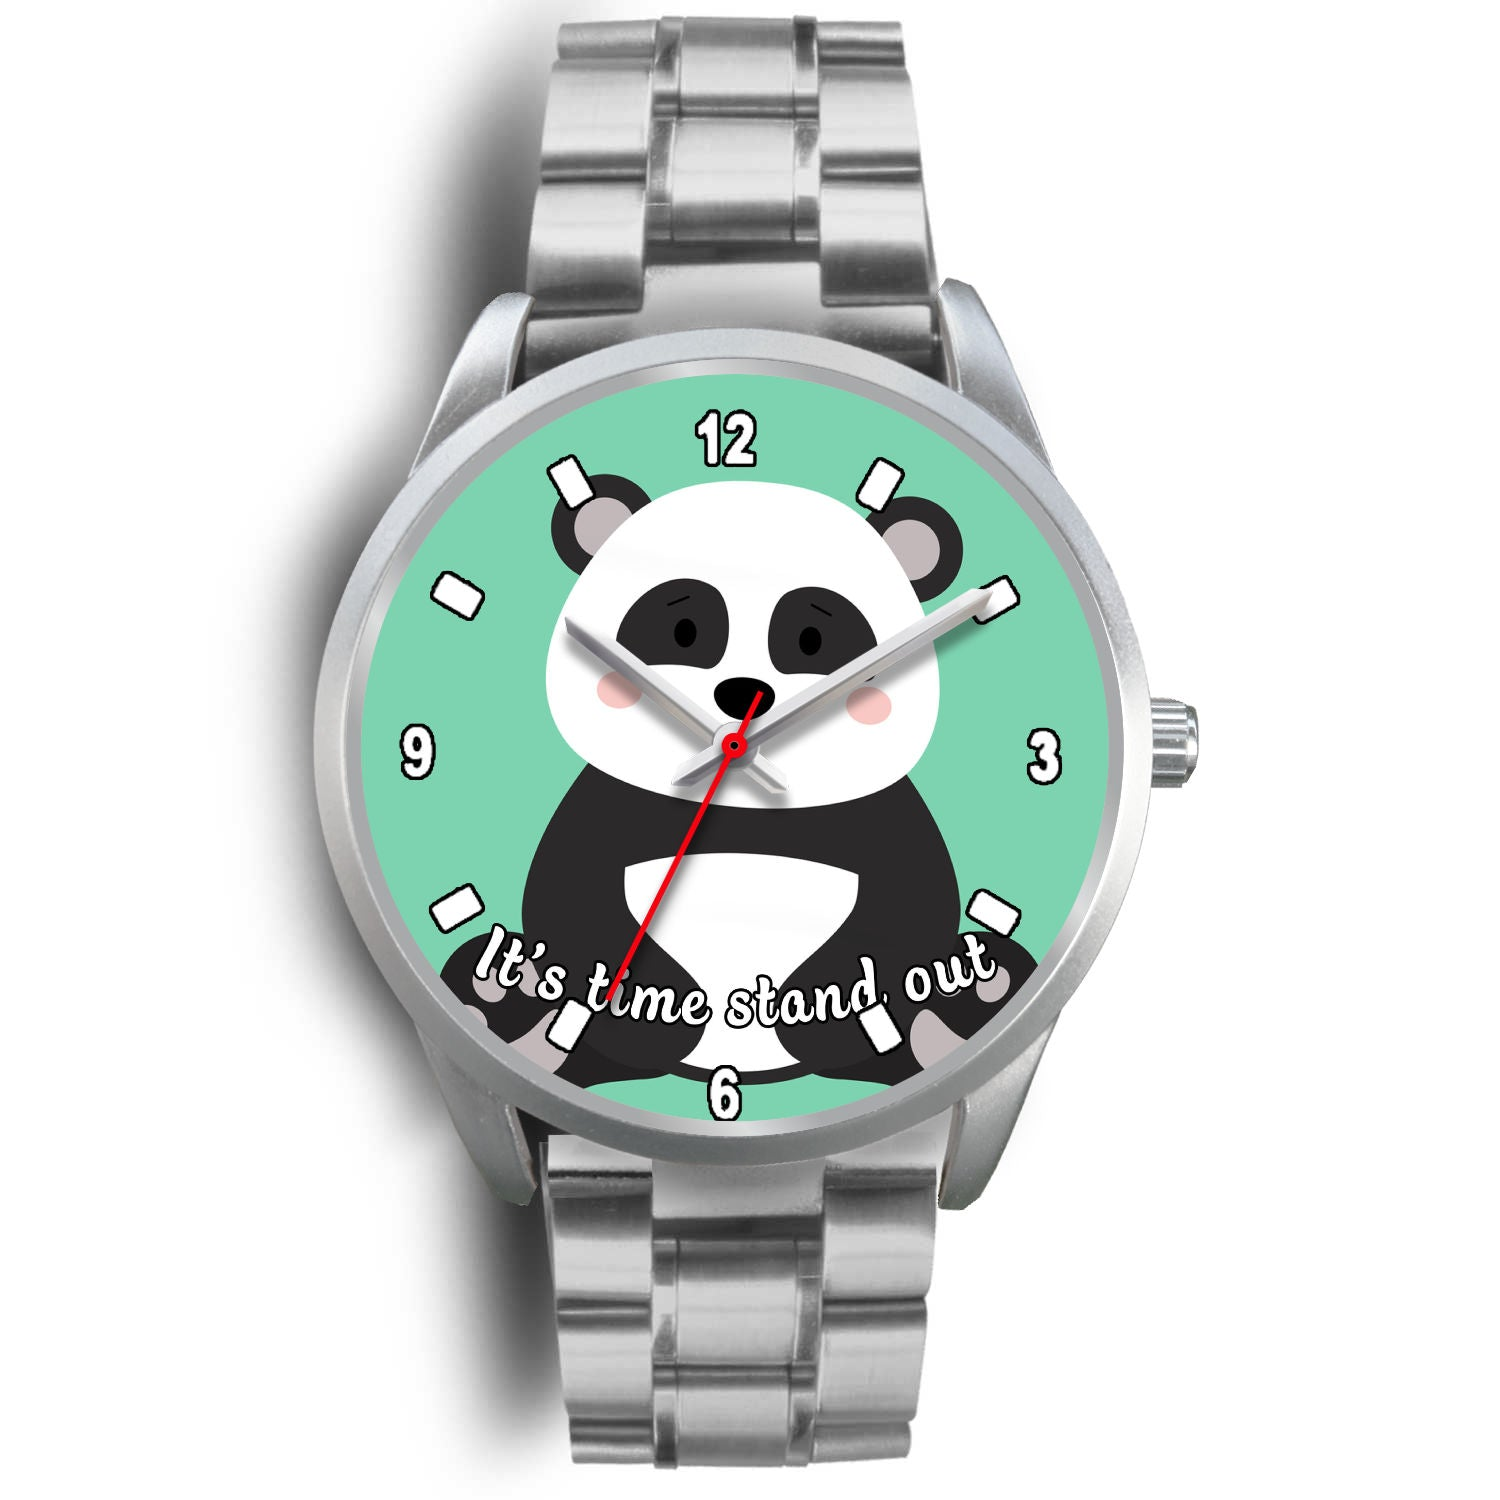 Nh 6 Panda Cute Watch